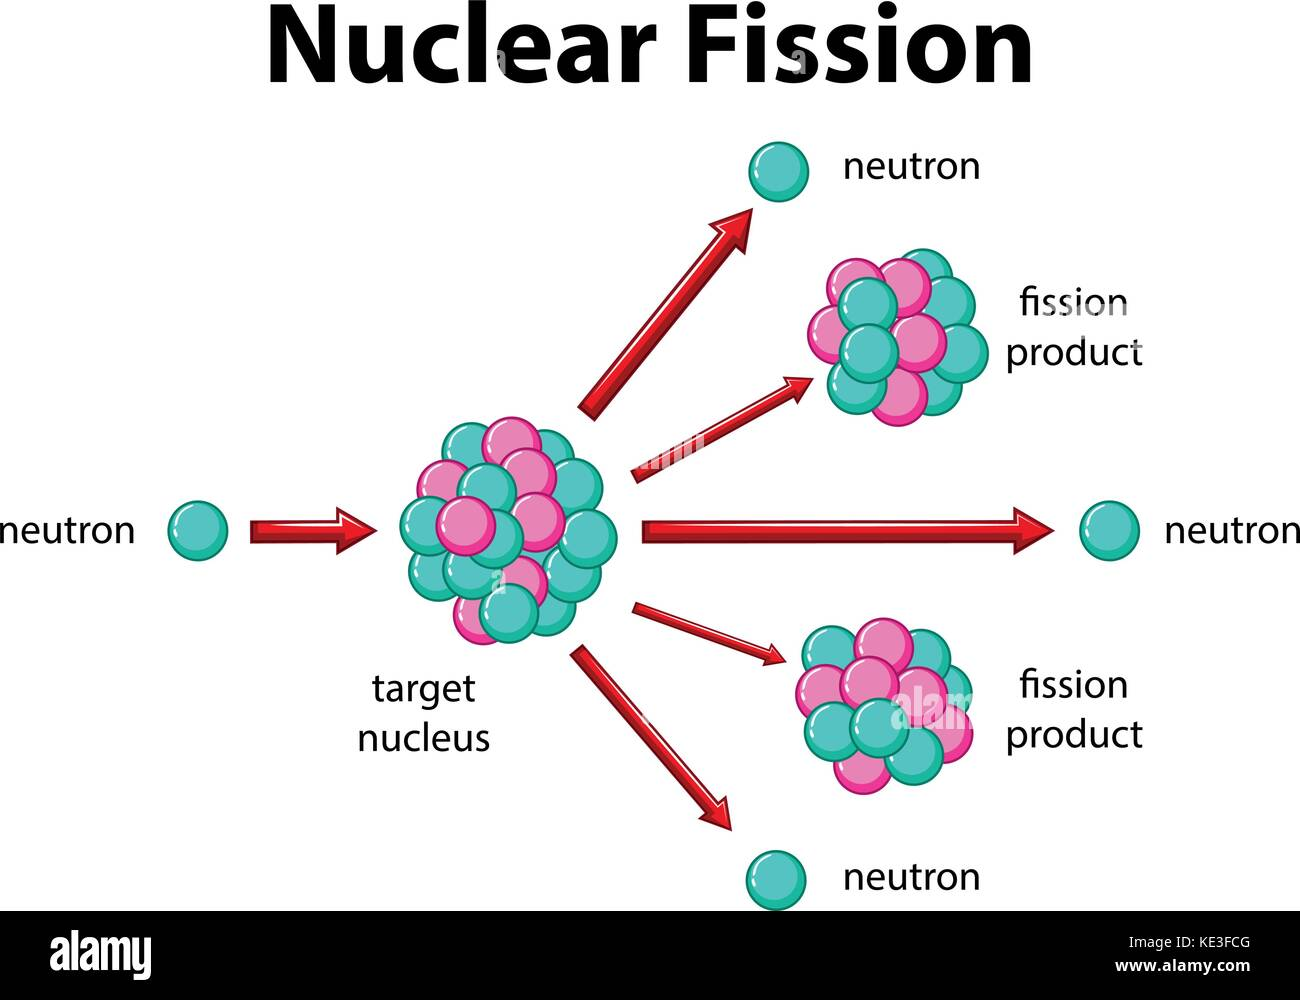 diagram showing nuclear fission illustration stock vector art